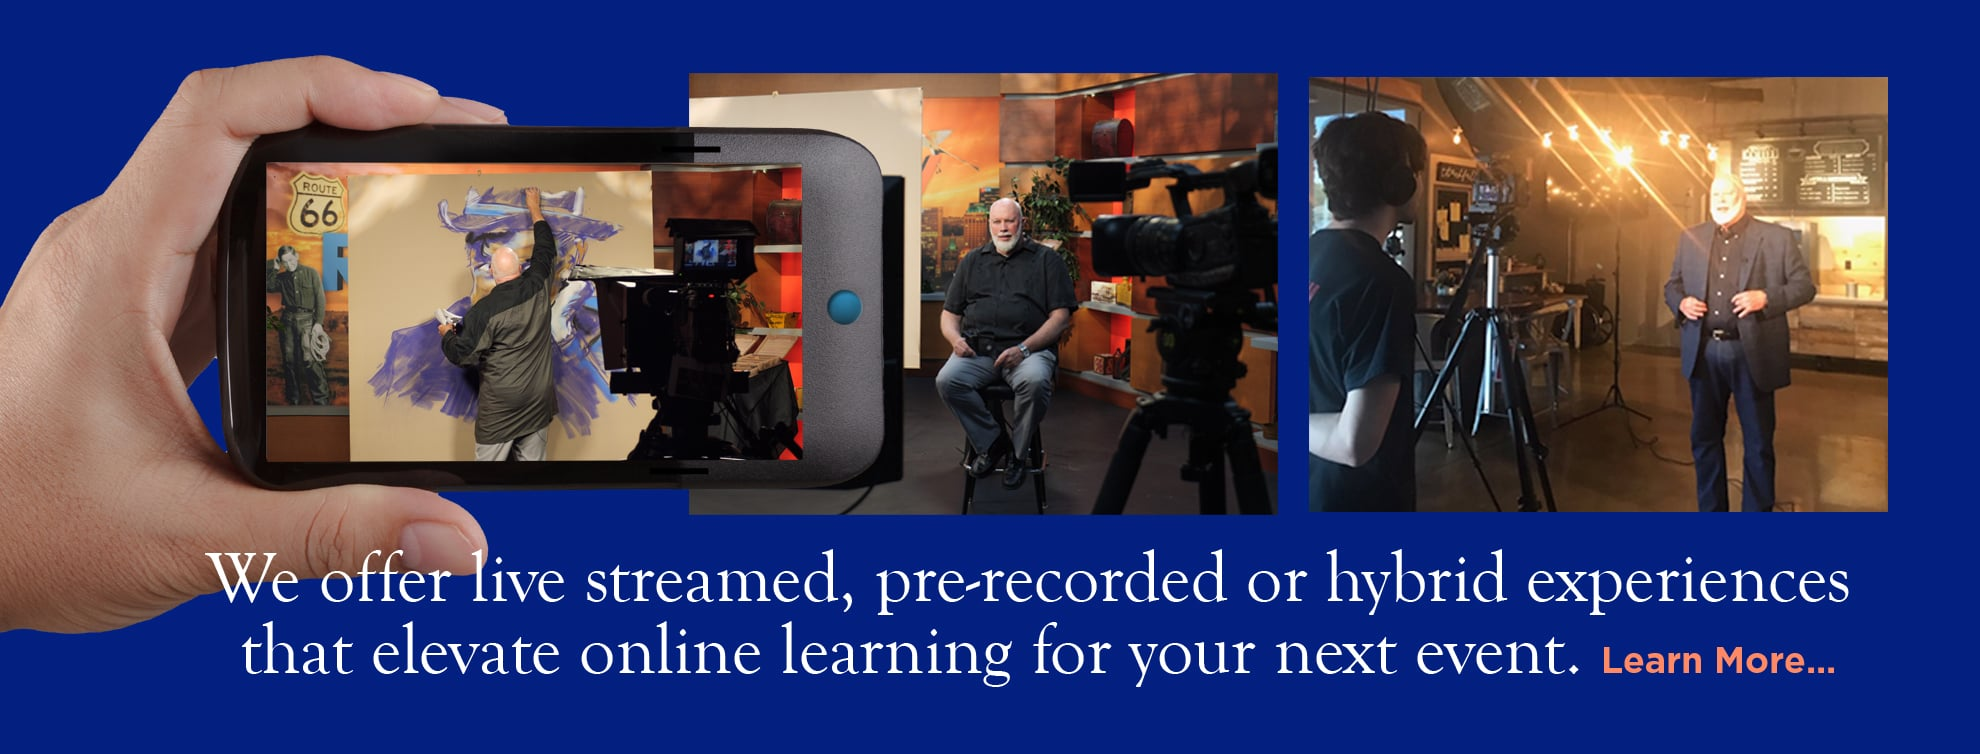 We offer live streamed, pre-recorded or hybrid experiences that elevate online learning for your next event. Learn More.